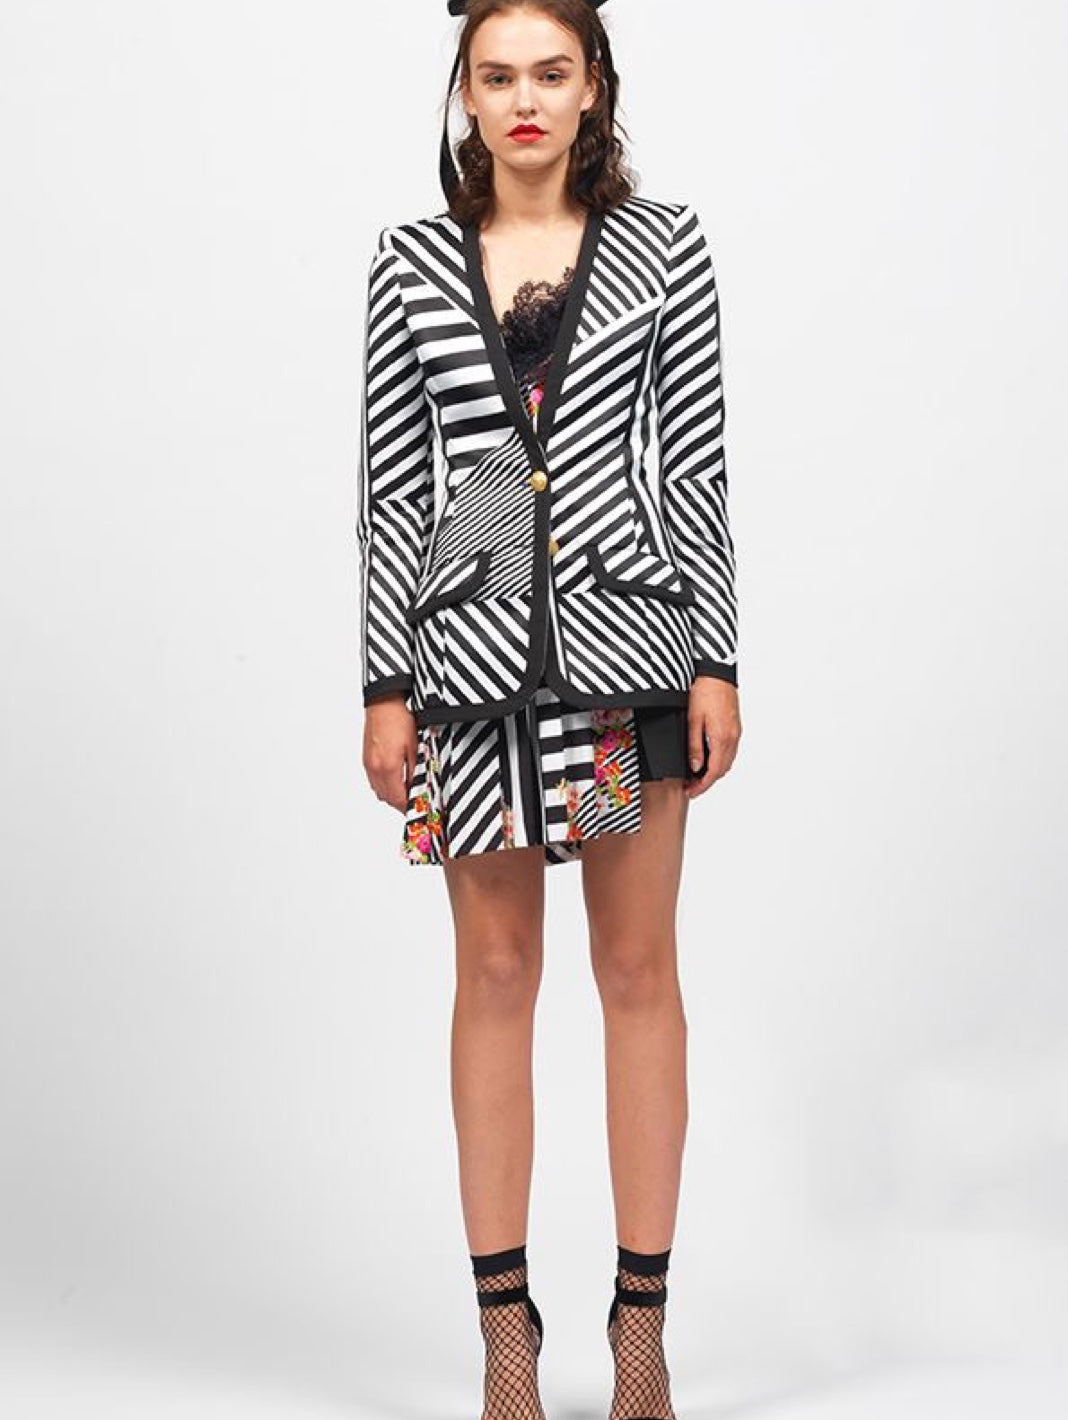 Striped Print Mini Skirt - The Bobby Boga